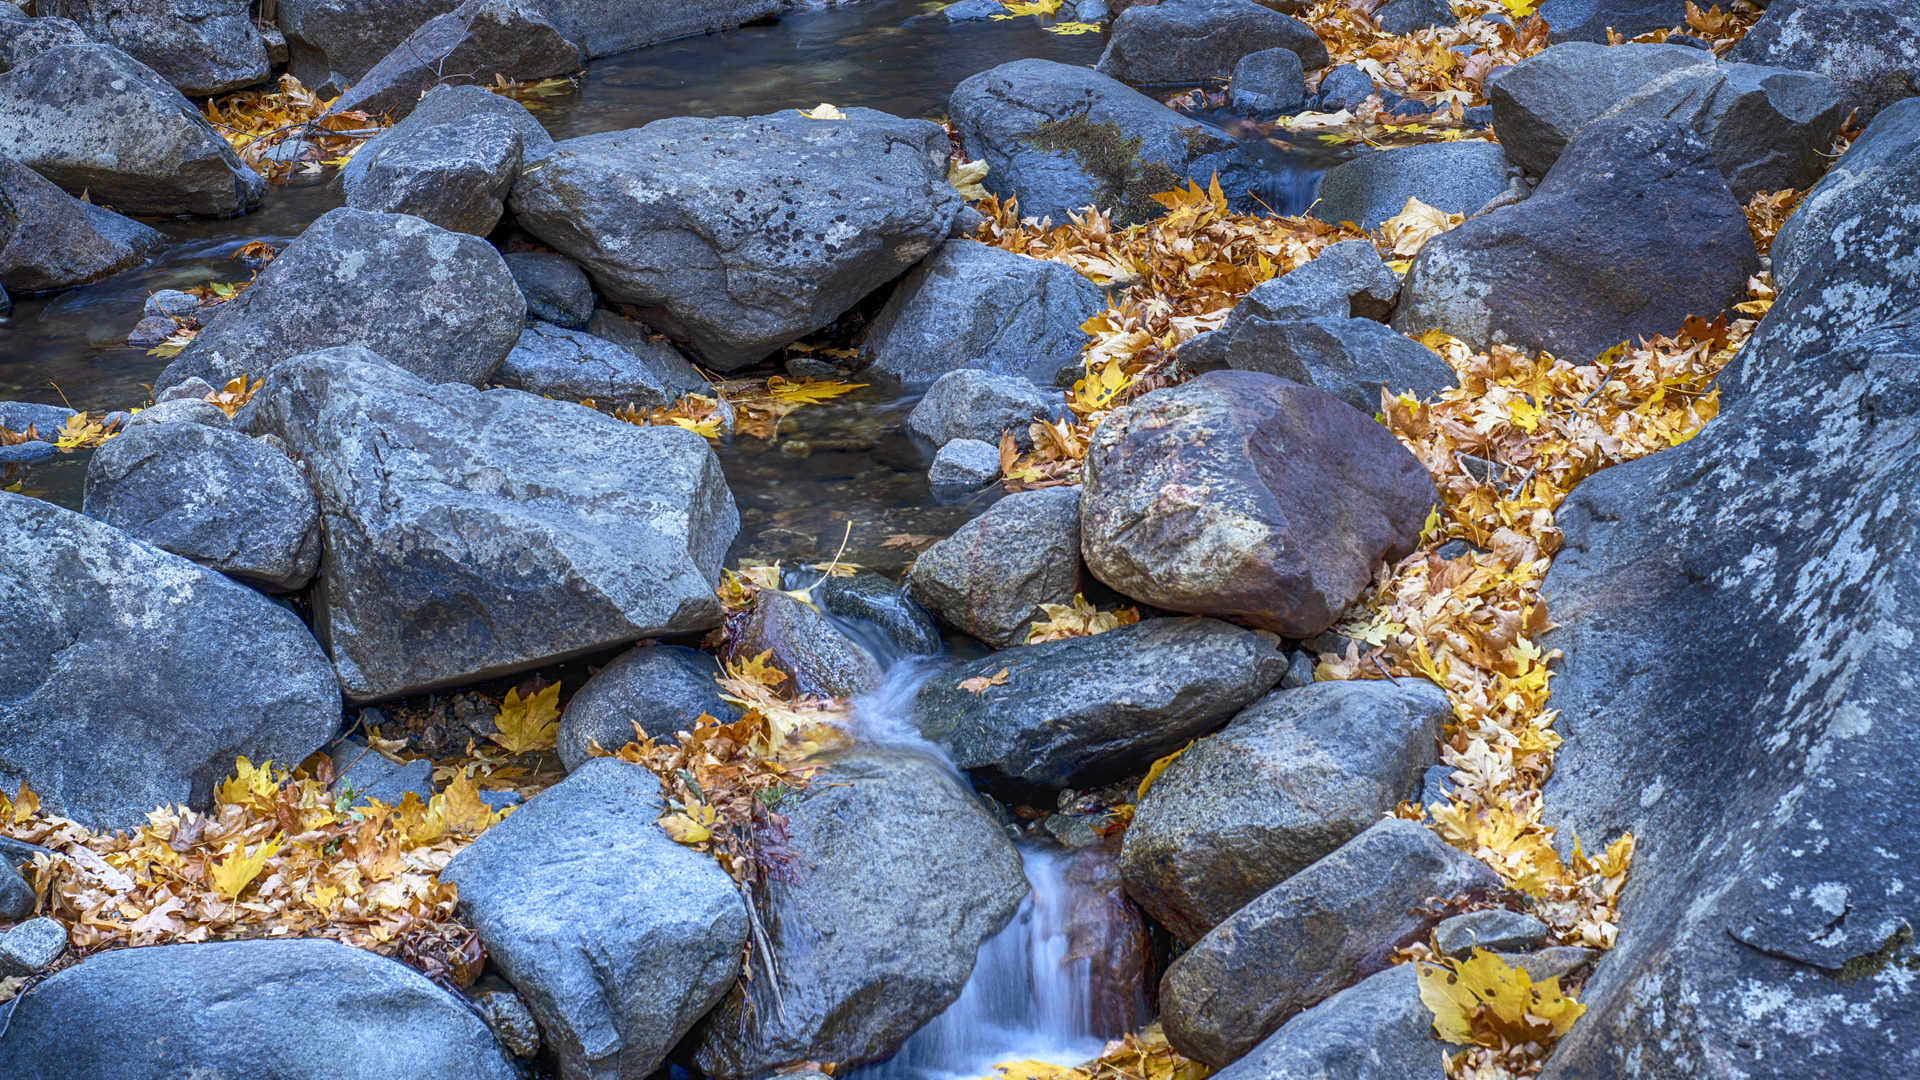 yosemite, national park, fall, rocks, stream